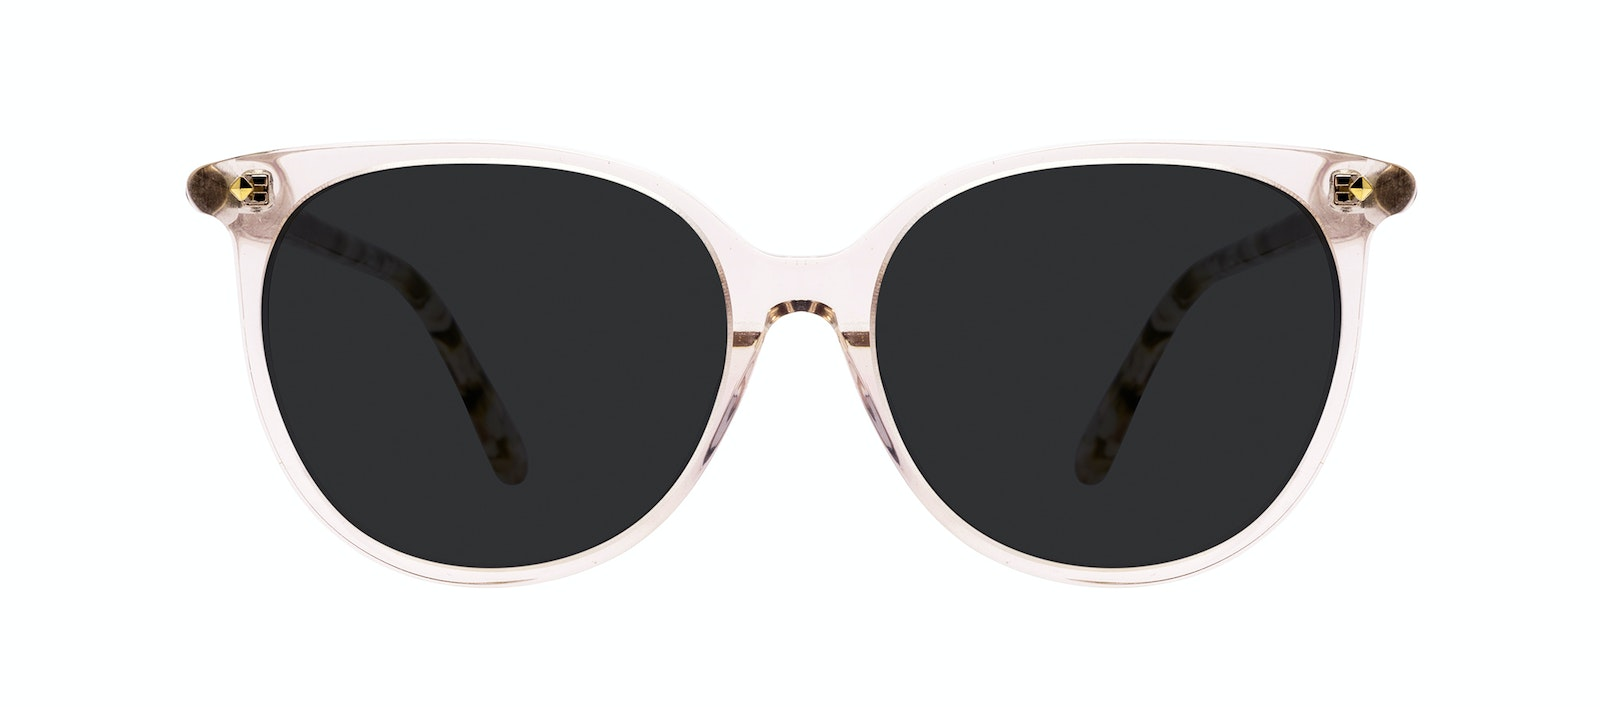 Affordable Fashion Glasses Round Sunglasses Women Area Petite Rose Front